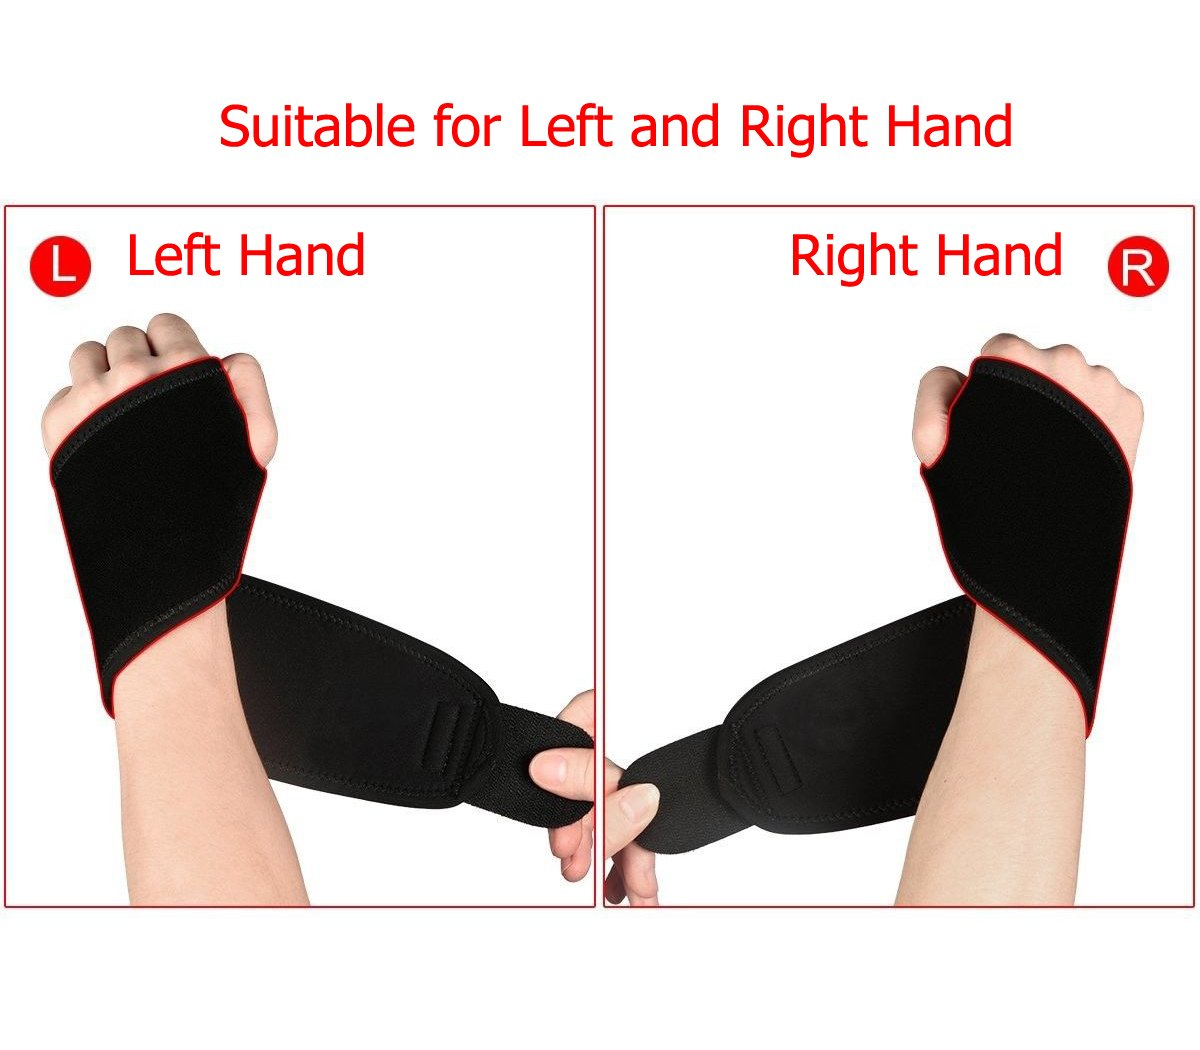 Wrist Wraps Brace Support For Carpal Tunnel Arthritis - Compression Braces Stabilizer - For Men Women Kids - Left And Right Hand - One Hand Adjustable - Best For Weight Lifting Bowling Workout (Black) by Wise Impress (Image #6)